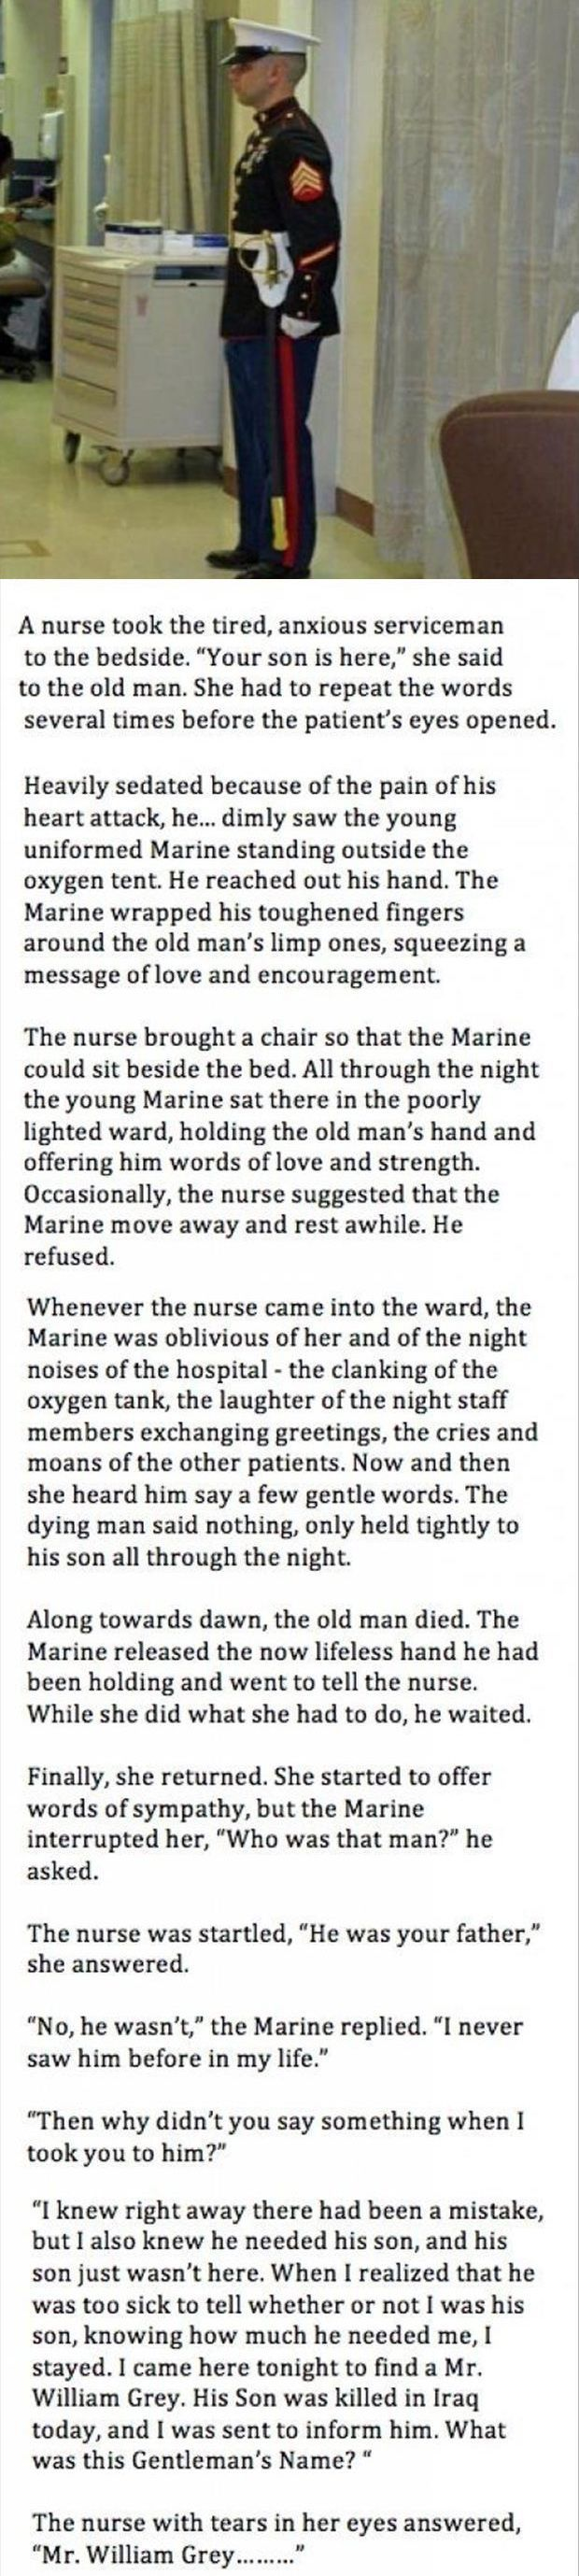 Very sad but amazing all at the same time... I wish all people in this world could be as thoughtful as this man